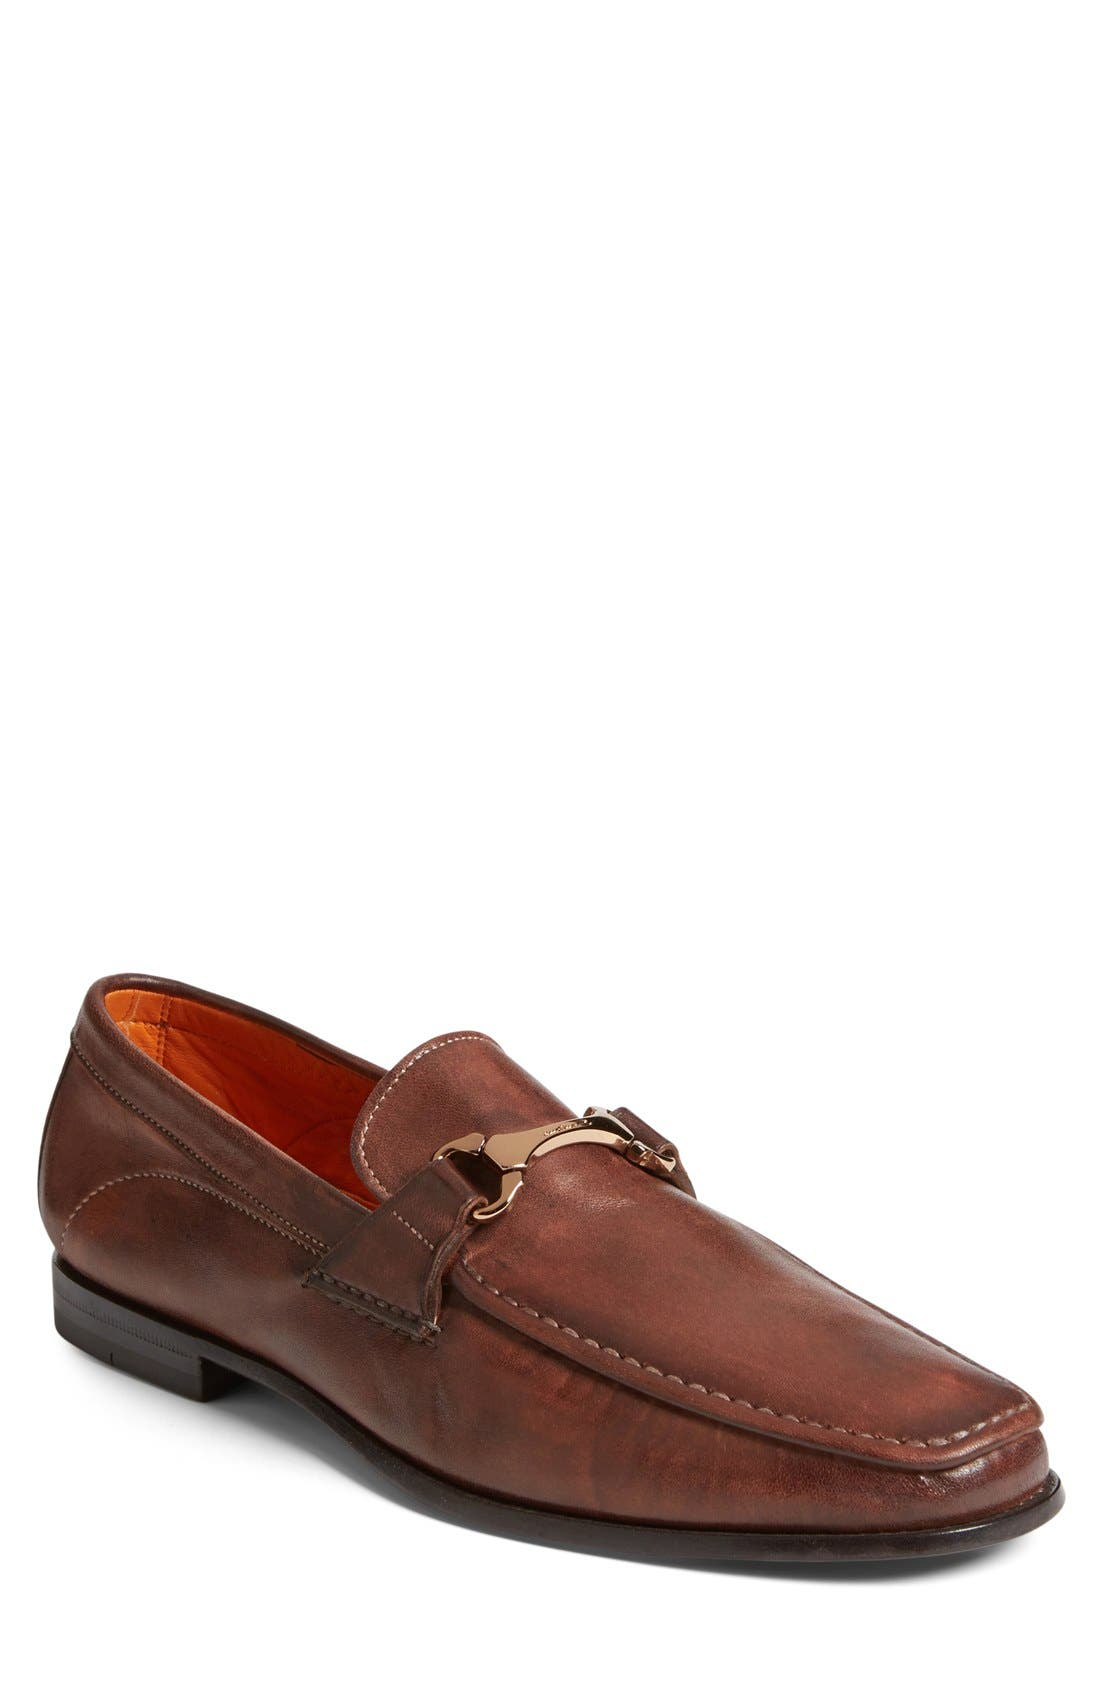 Main Image - Santoni 'Wake' Bit Loafer (Men)